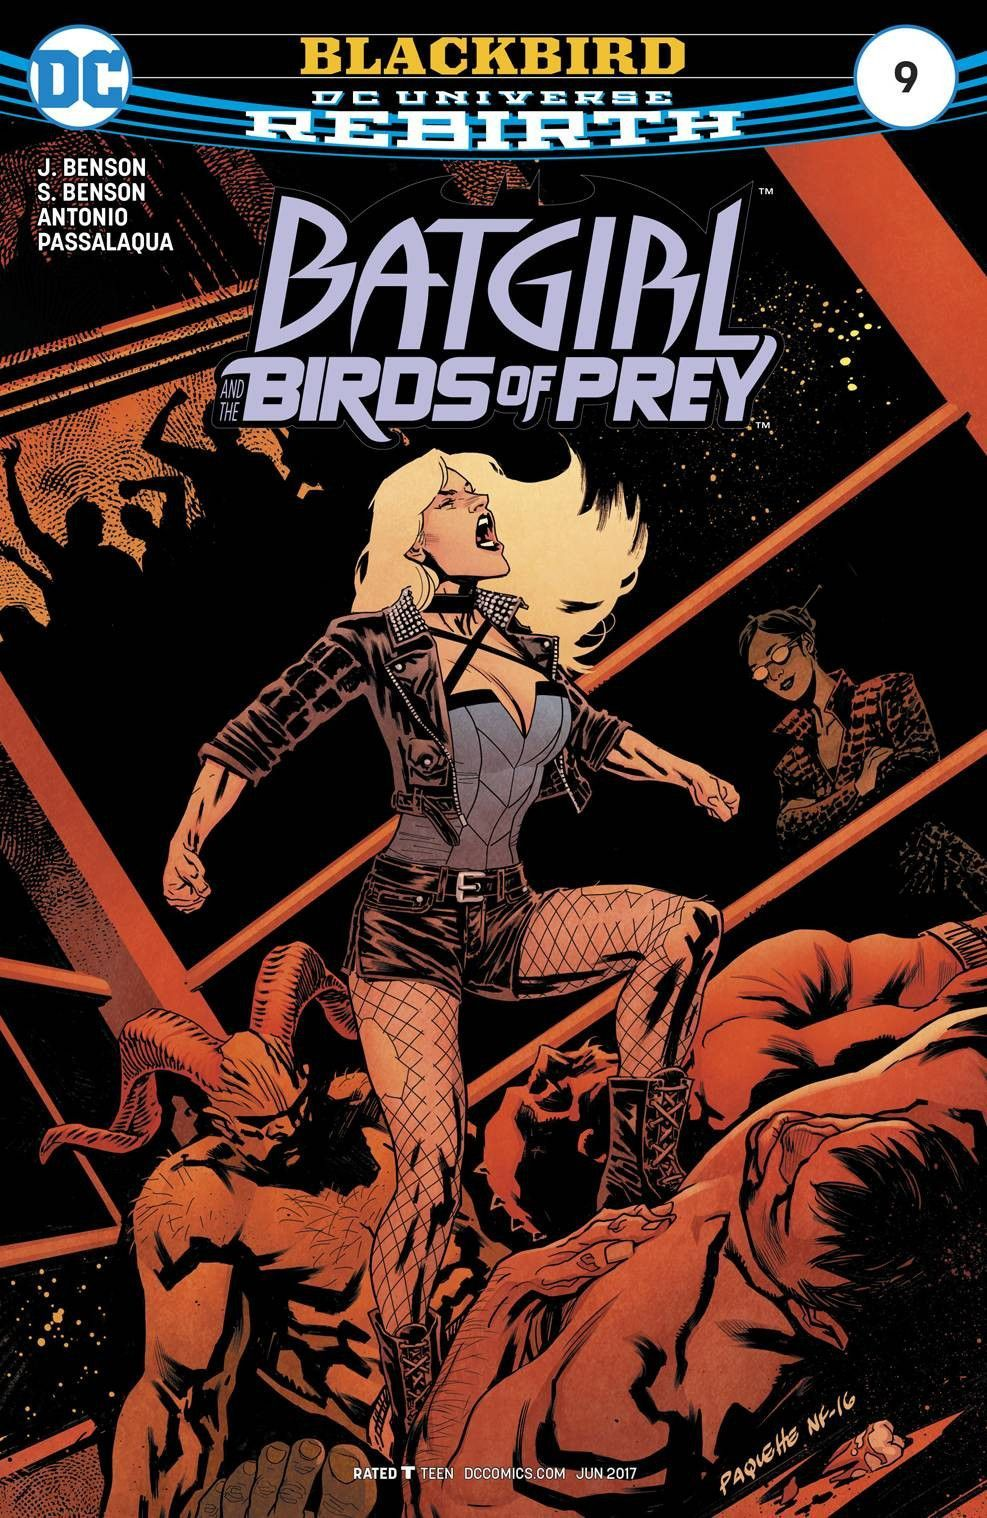 BATGIRL AND THE BIRDS OF PREY 9 (2017) Black canary